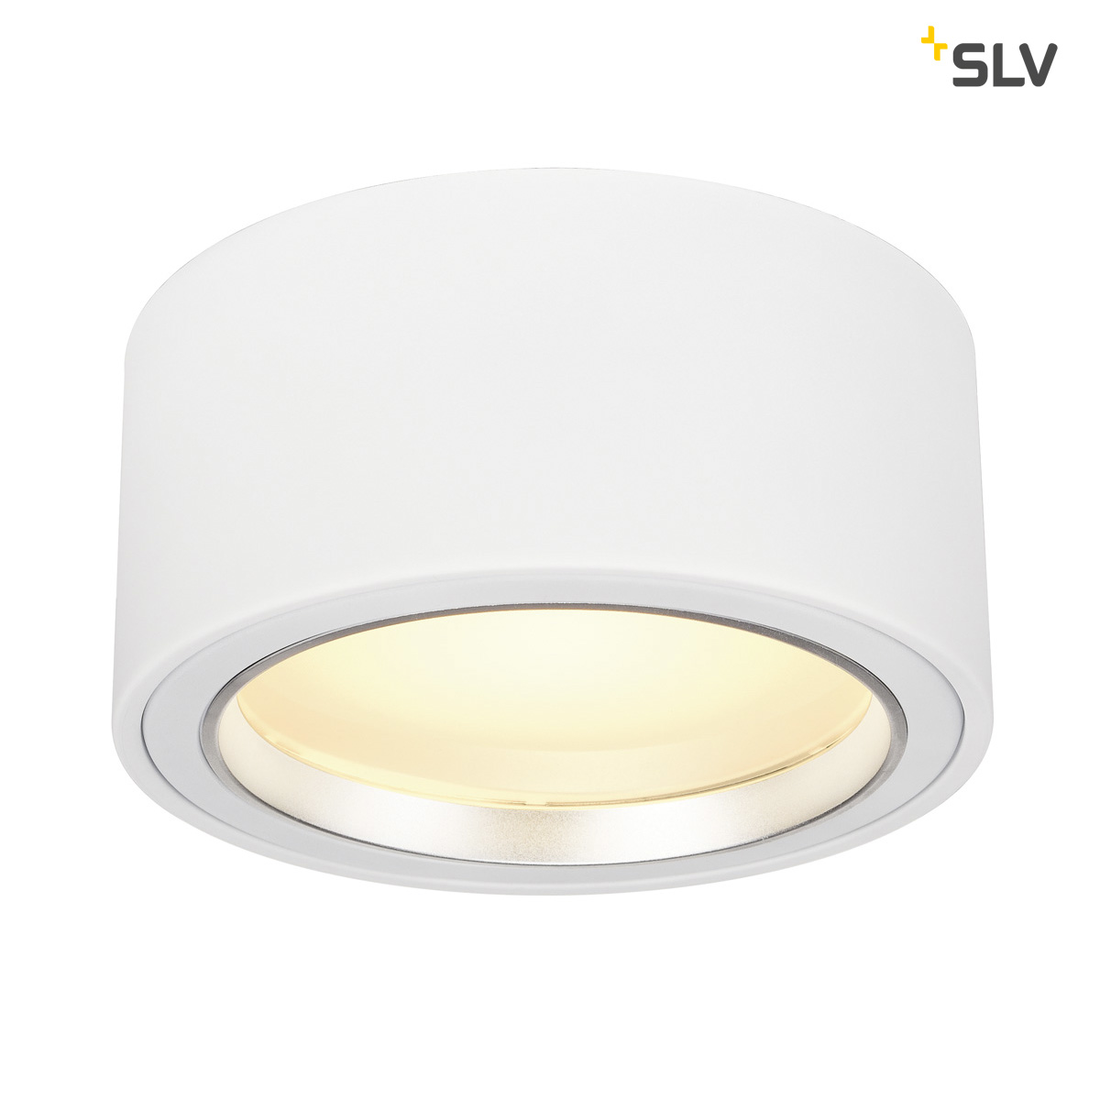 SLV LED SURFACE SPOT 1800lm rond wit 48 LED 3000K